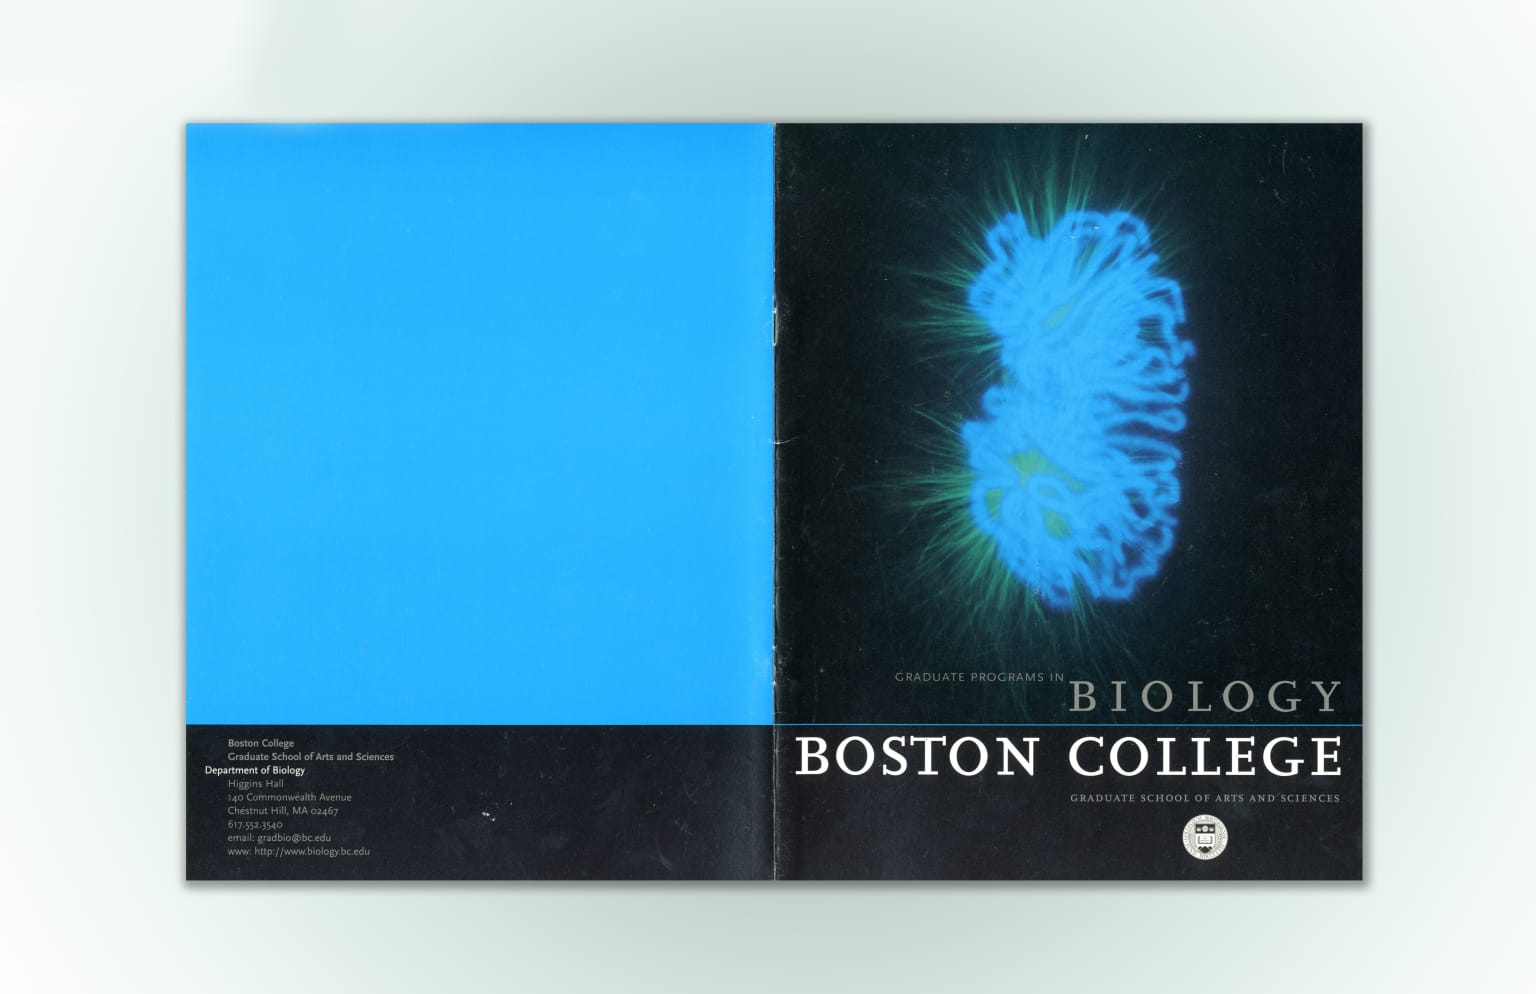 Boston College publications